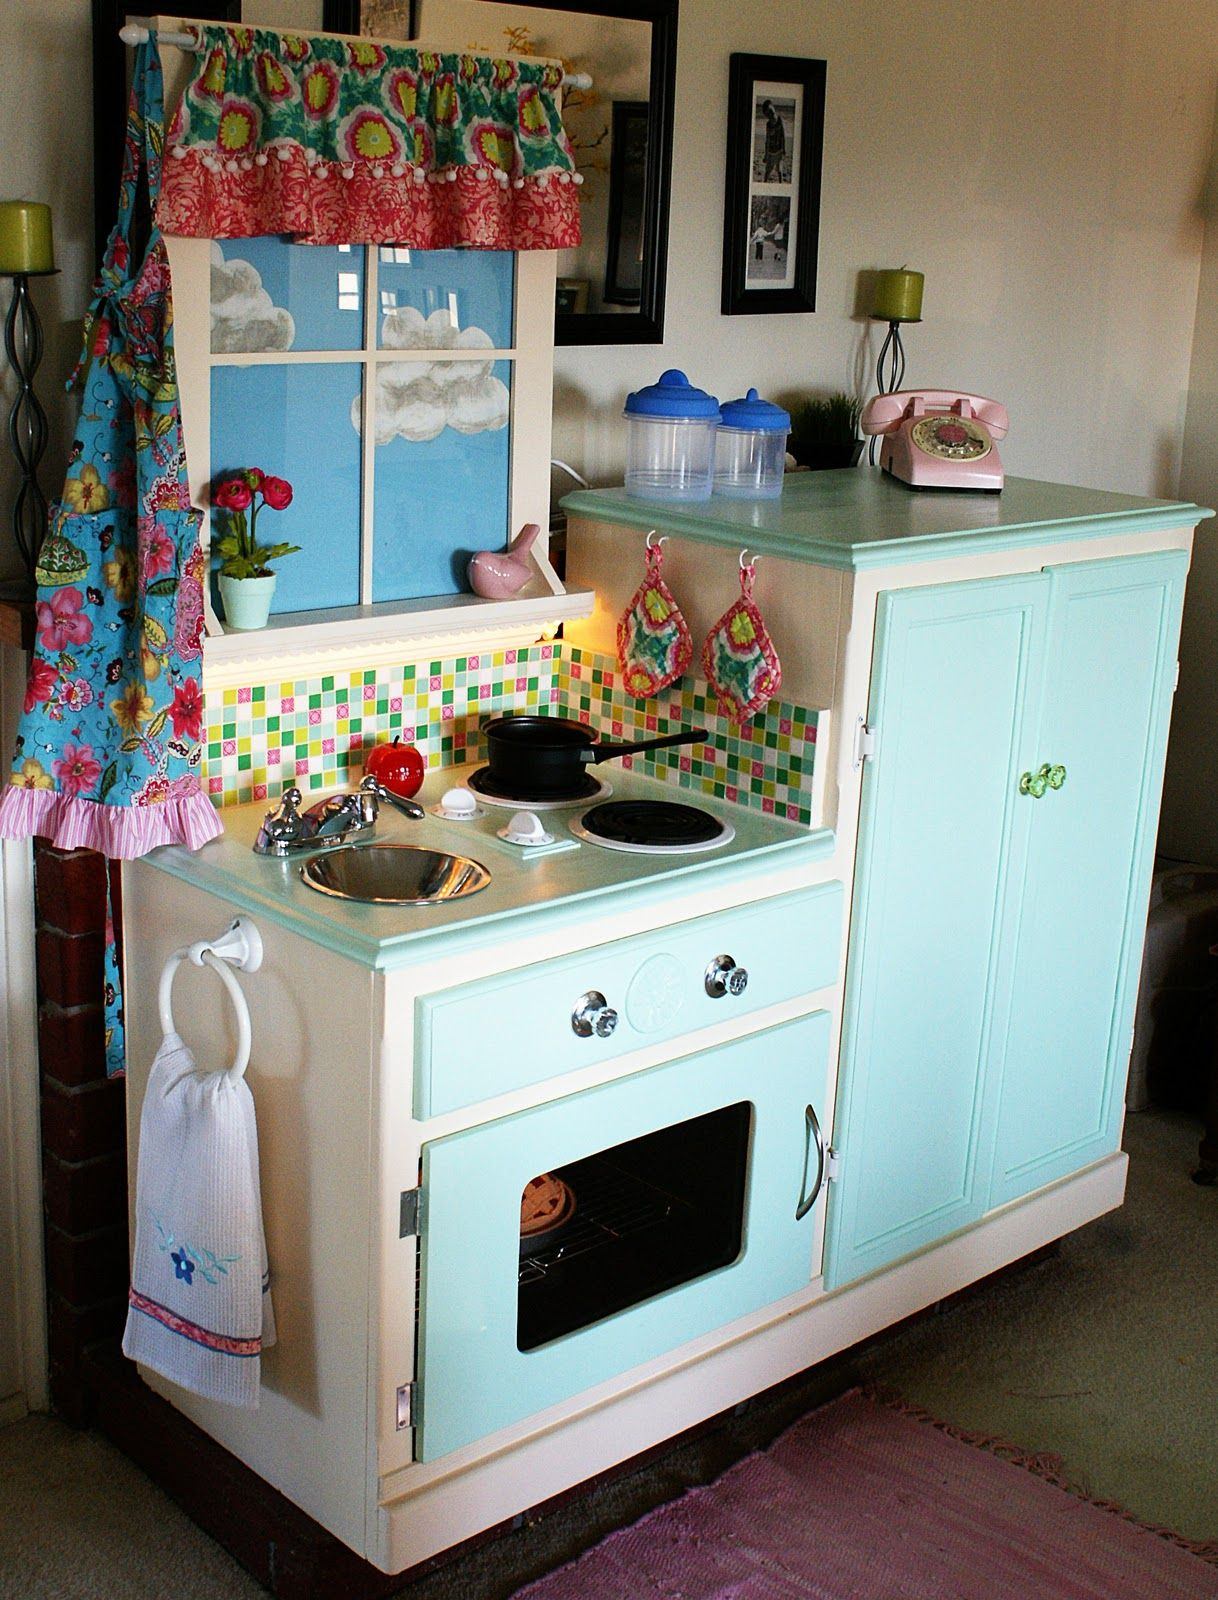 In search of the perfect piece of furniture to repurpose